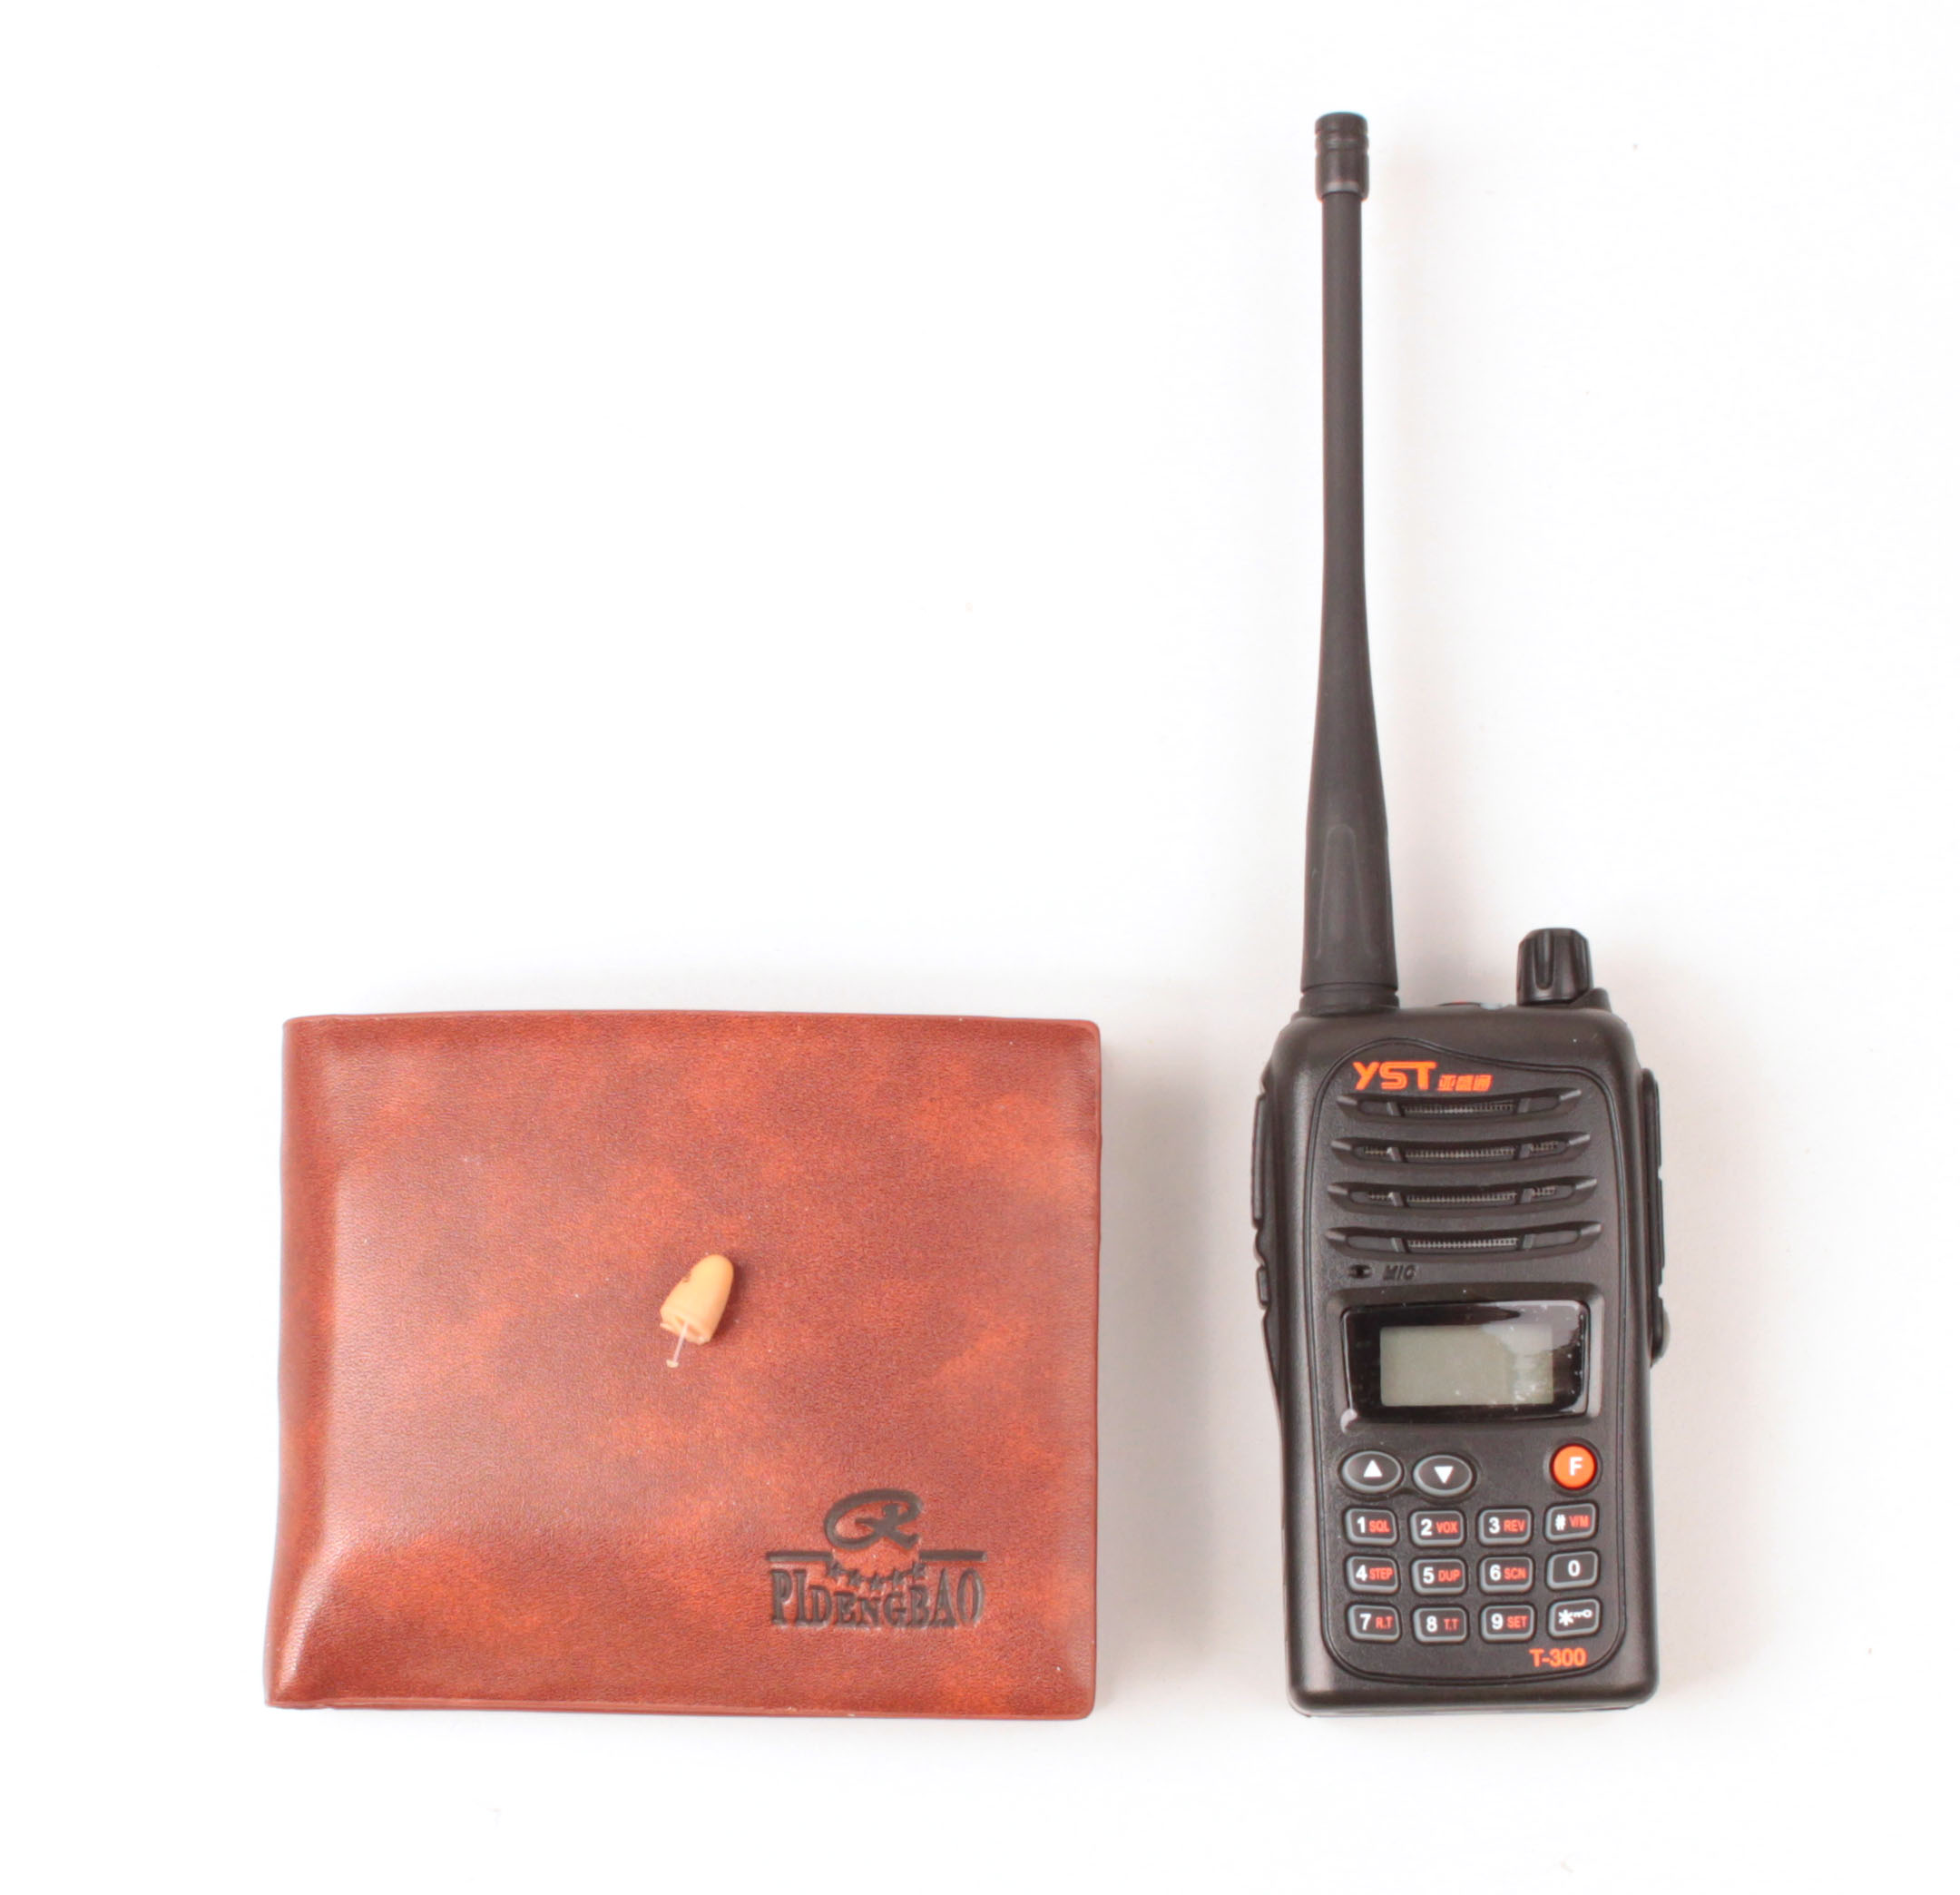 Spy Ear Walkie Talkie Spy Radio Transmission Wallet For Cheat A Test Or Pass Driving Test